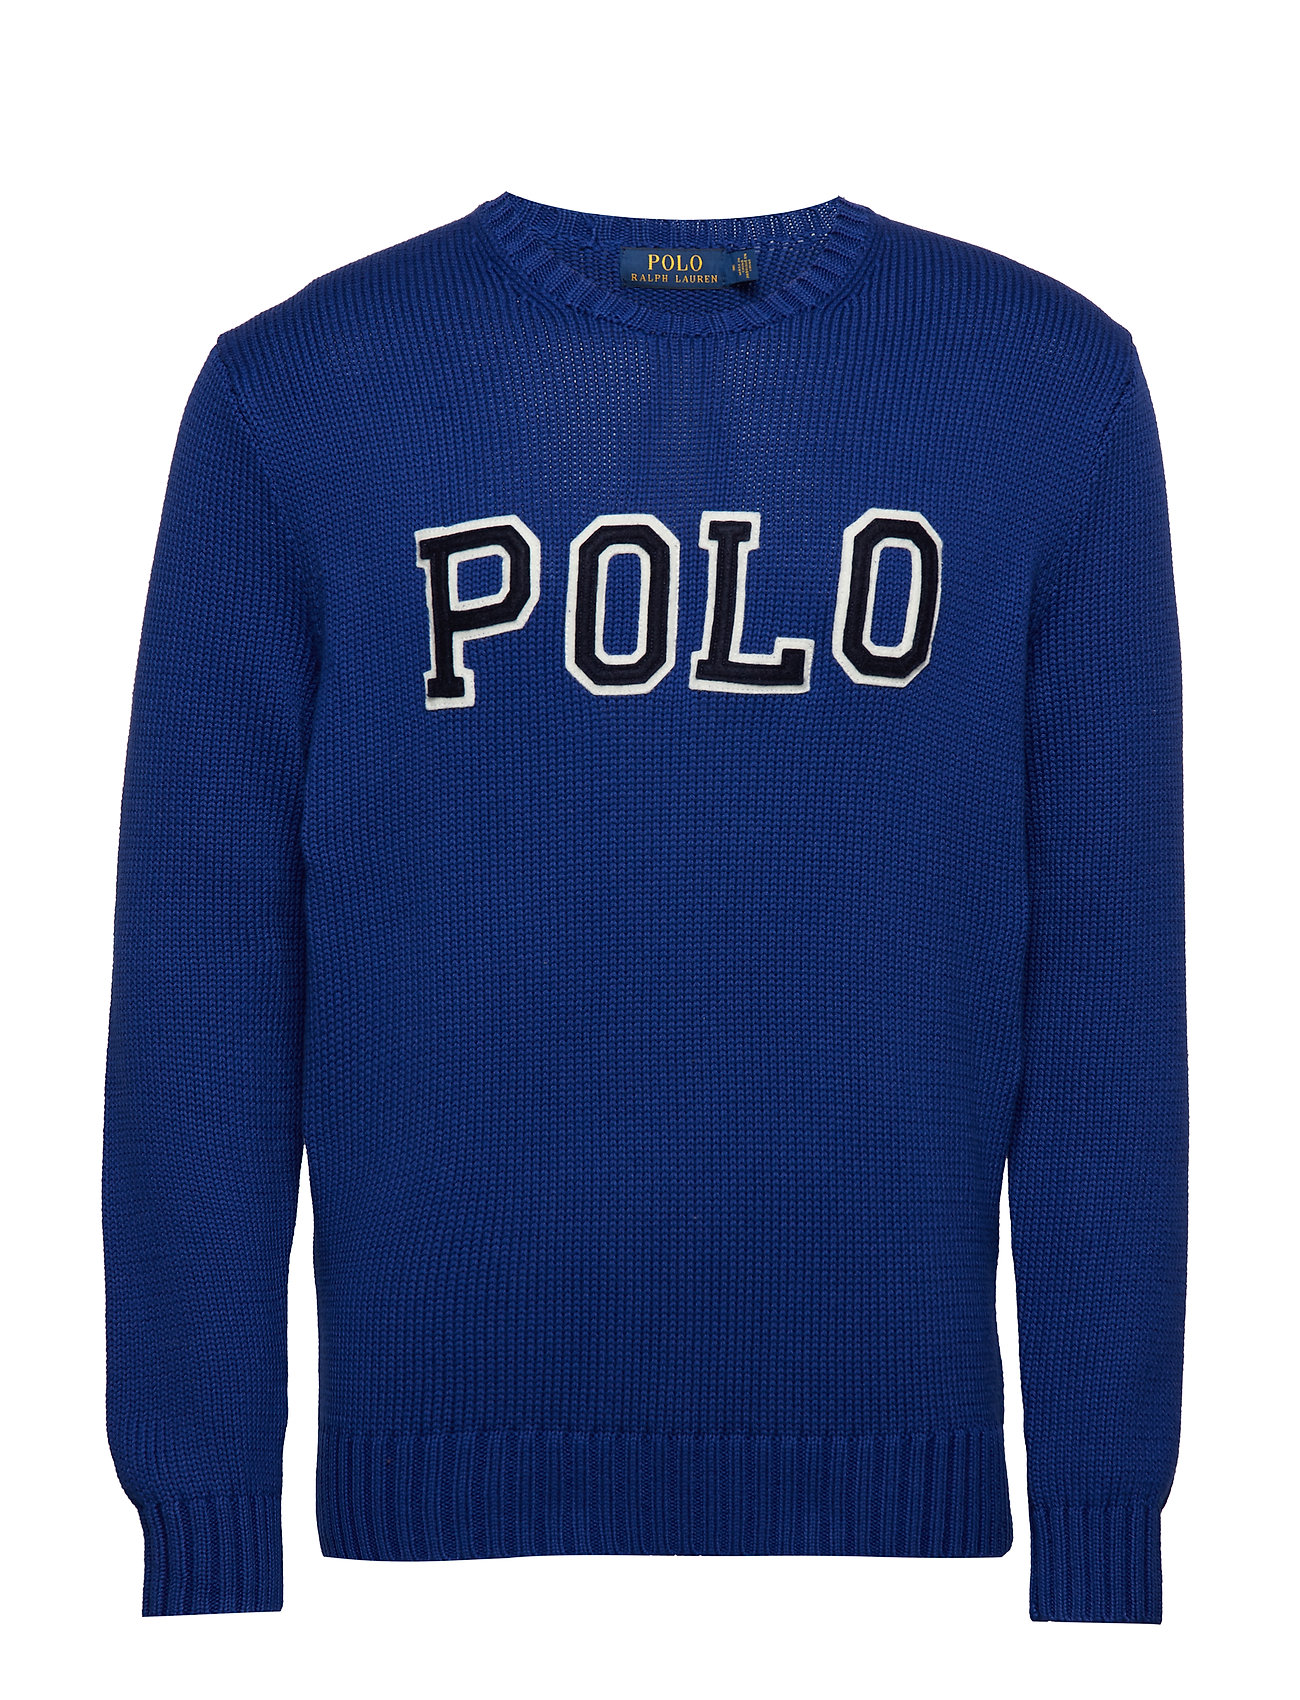 Polo Ralph Lauren Cotton Crewneck Sweater - HERITAGE ROYAL/NA